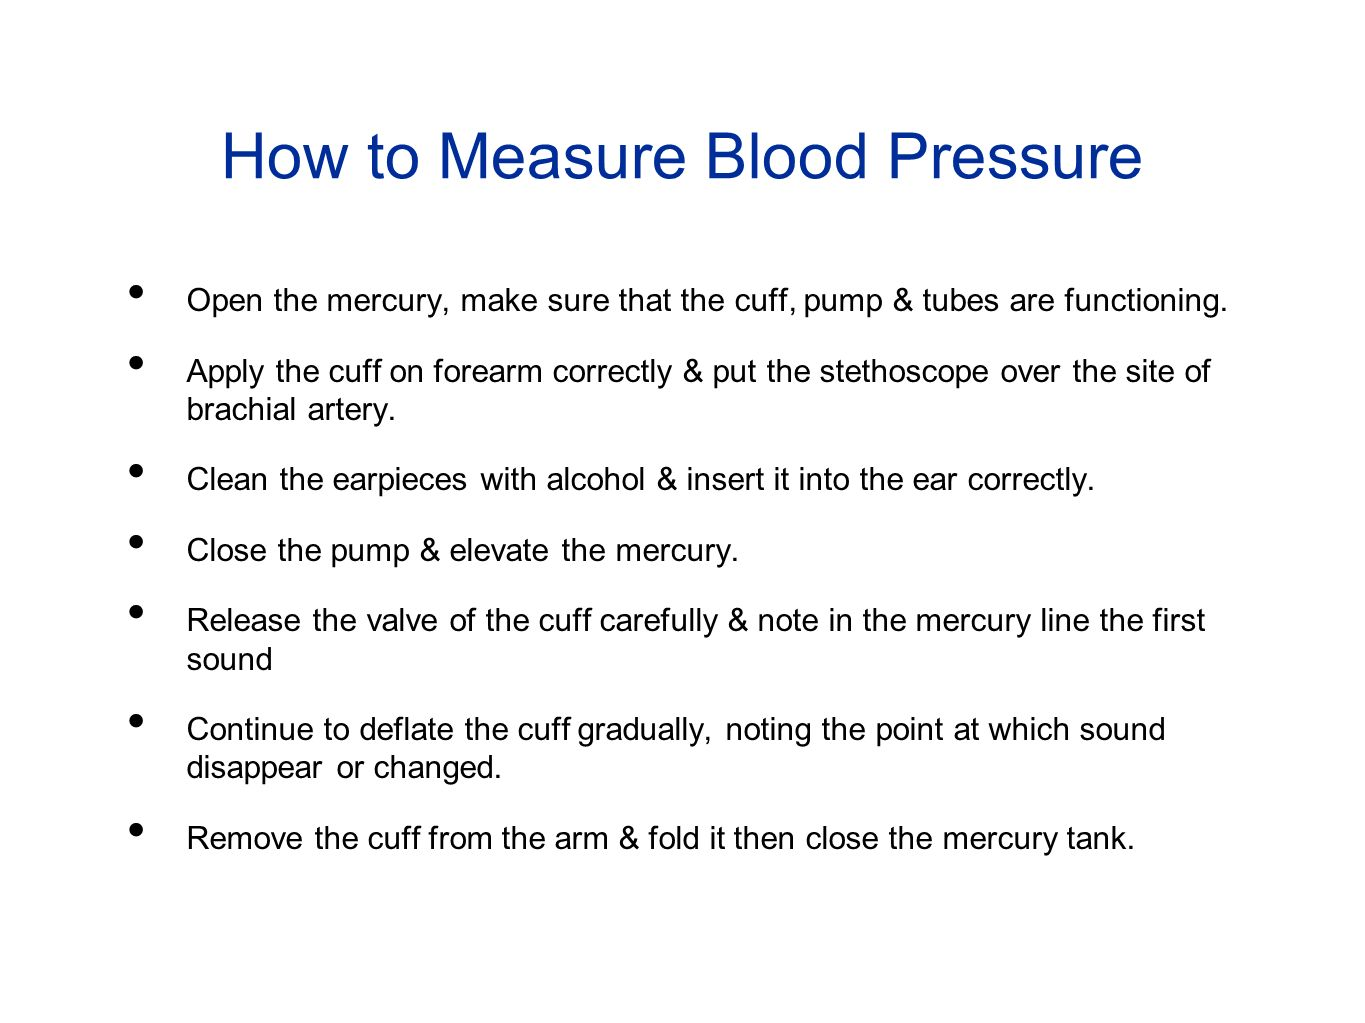 how to get normal blood pressure